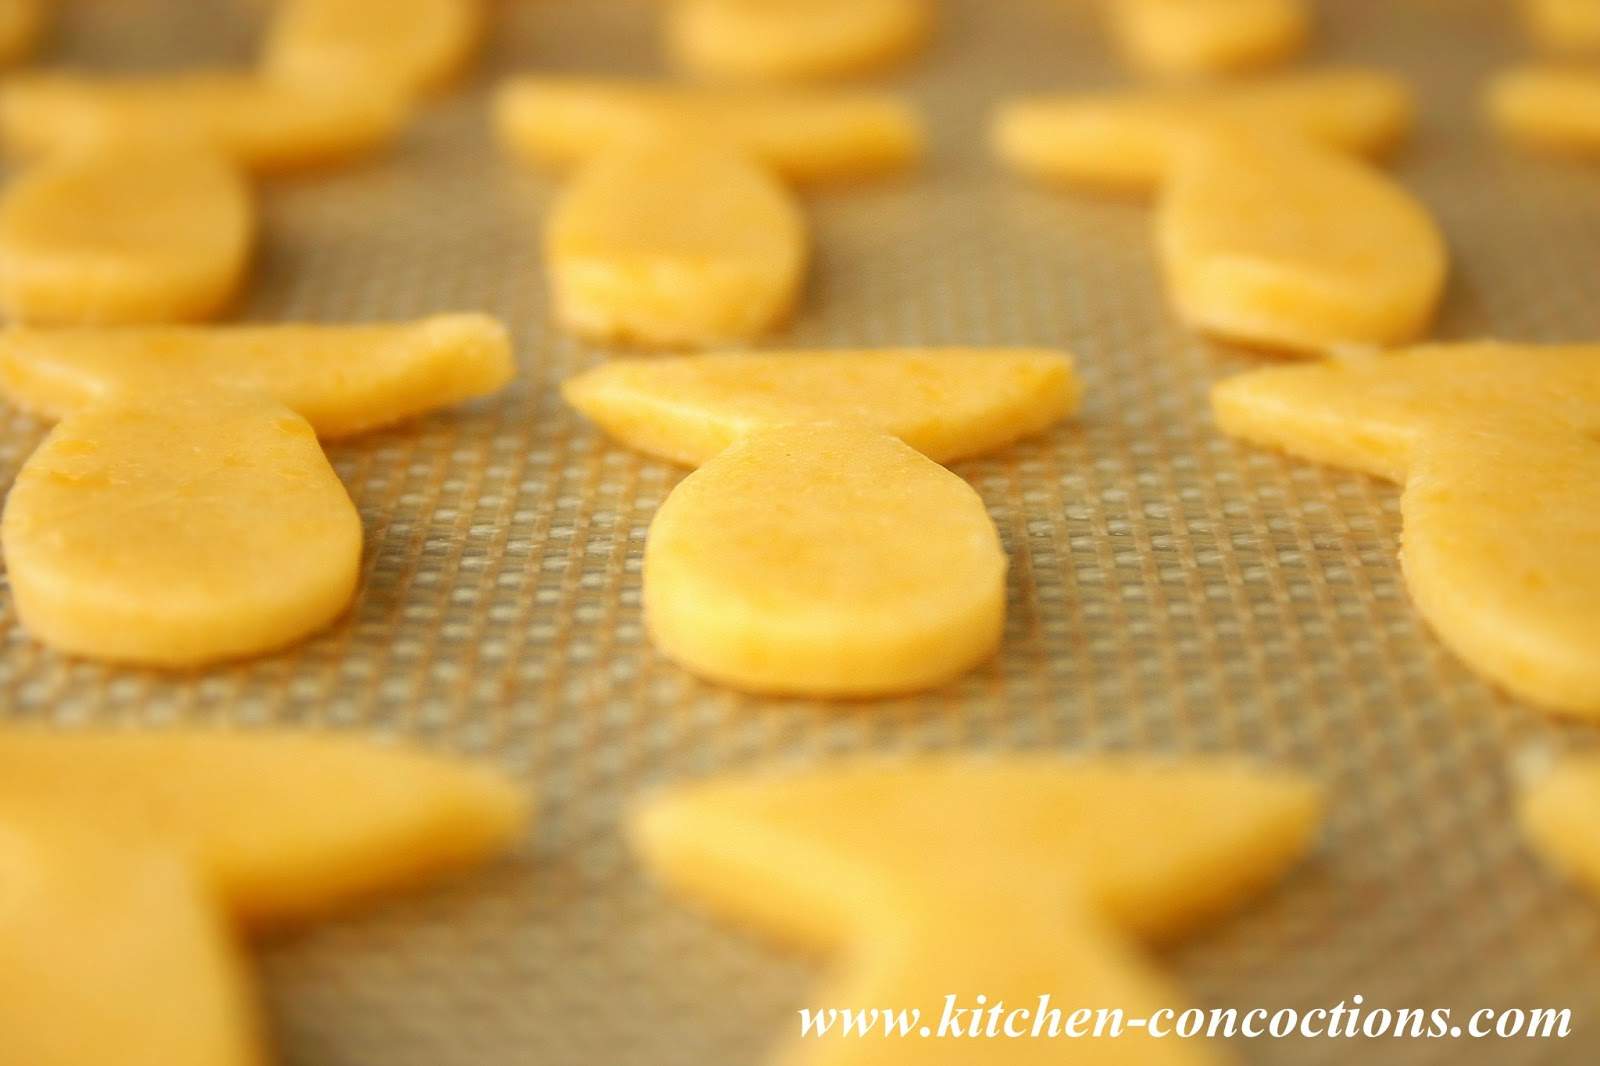 Kids in the Kitchen: Homemade Goldfish Crackers